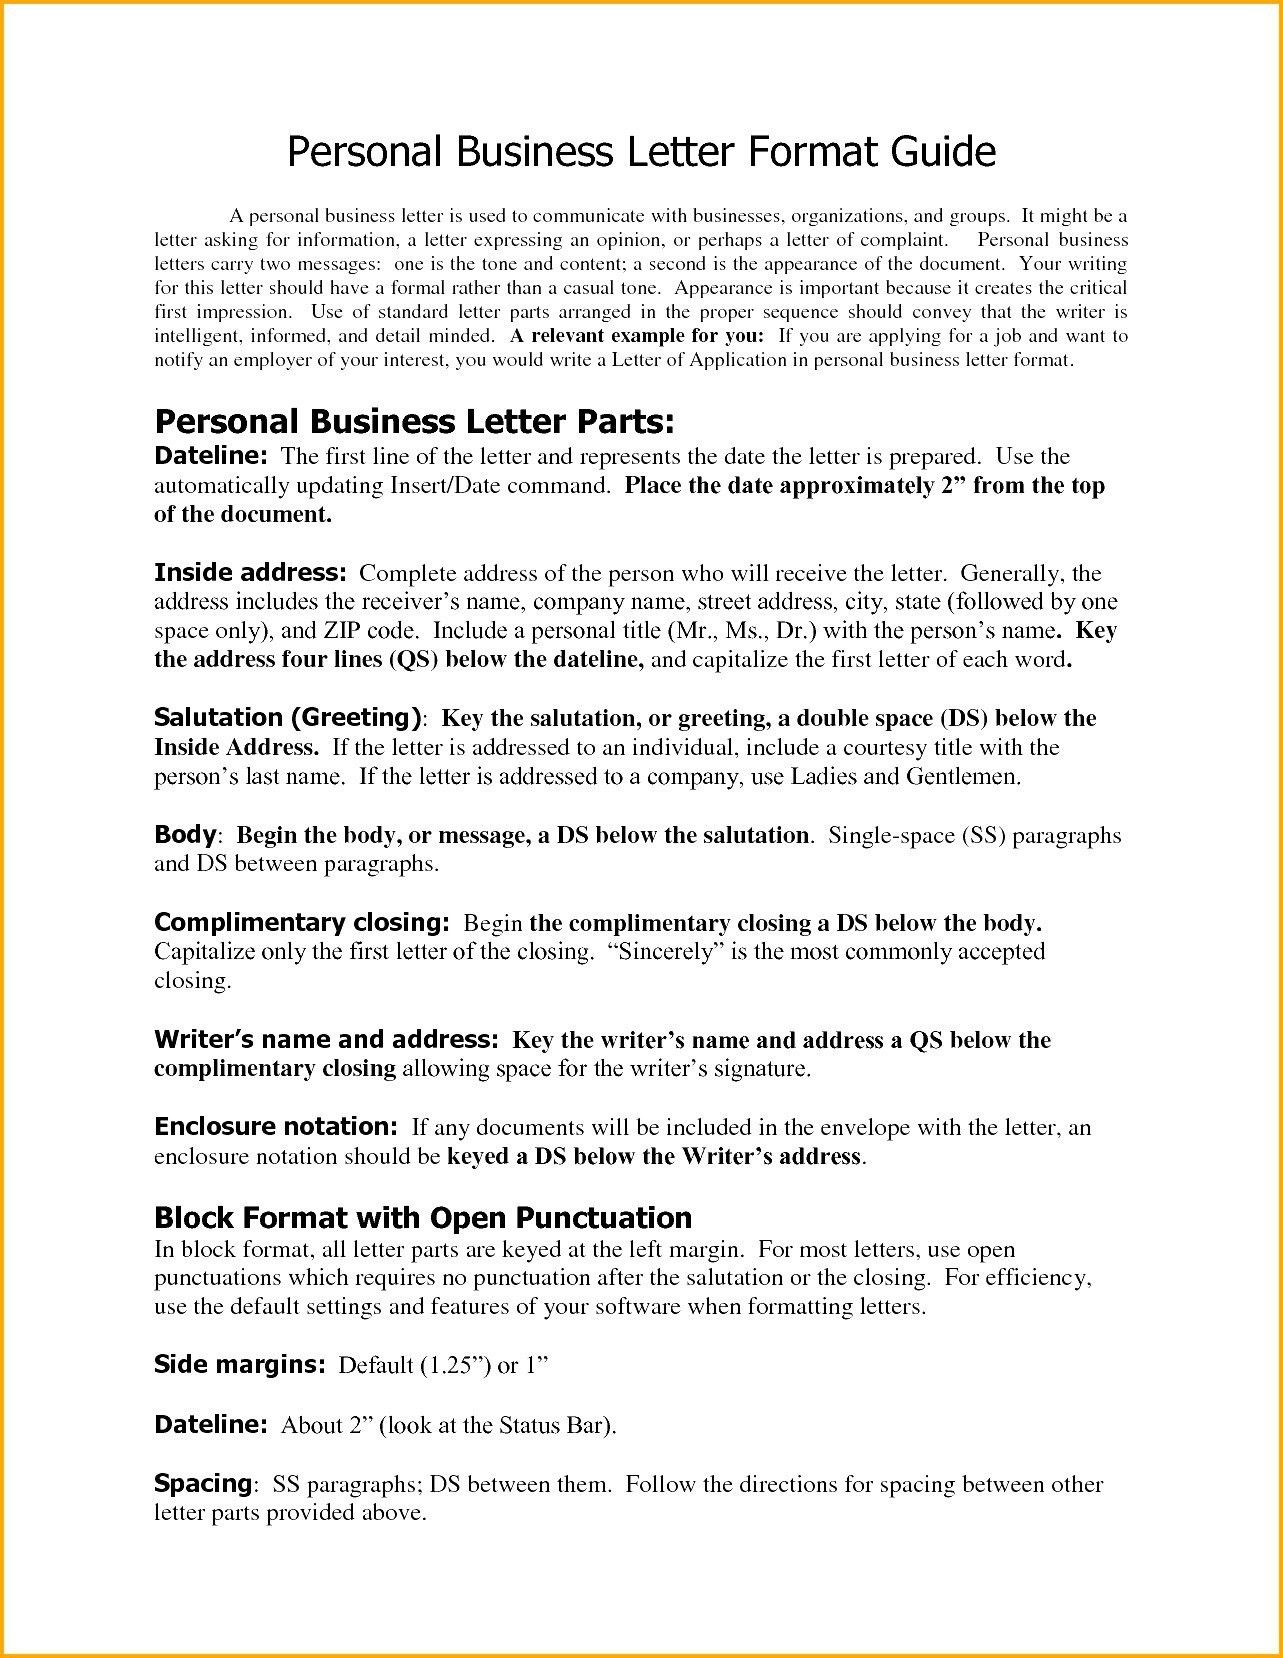 You Can See This Valid Business Letter format Enclosures